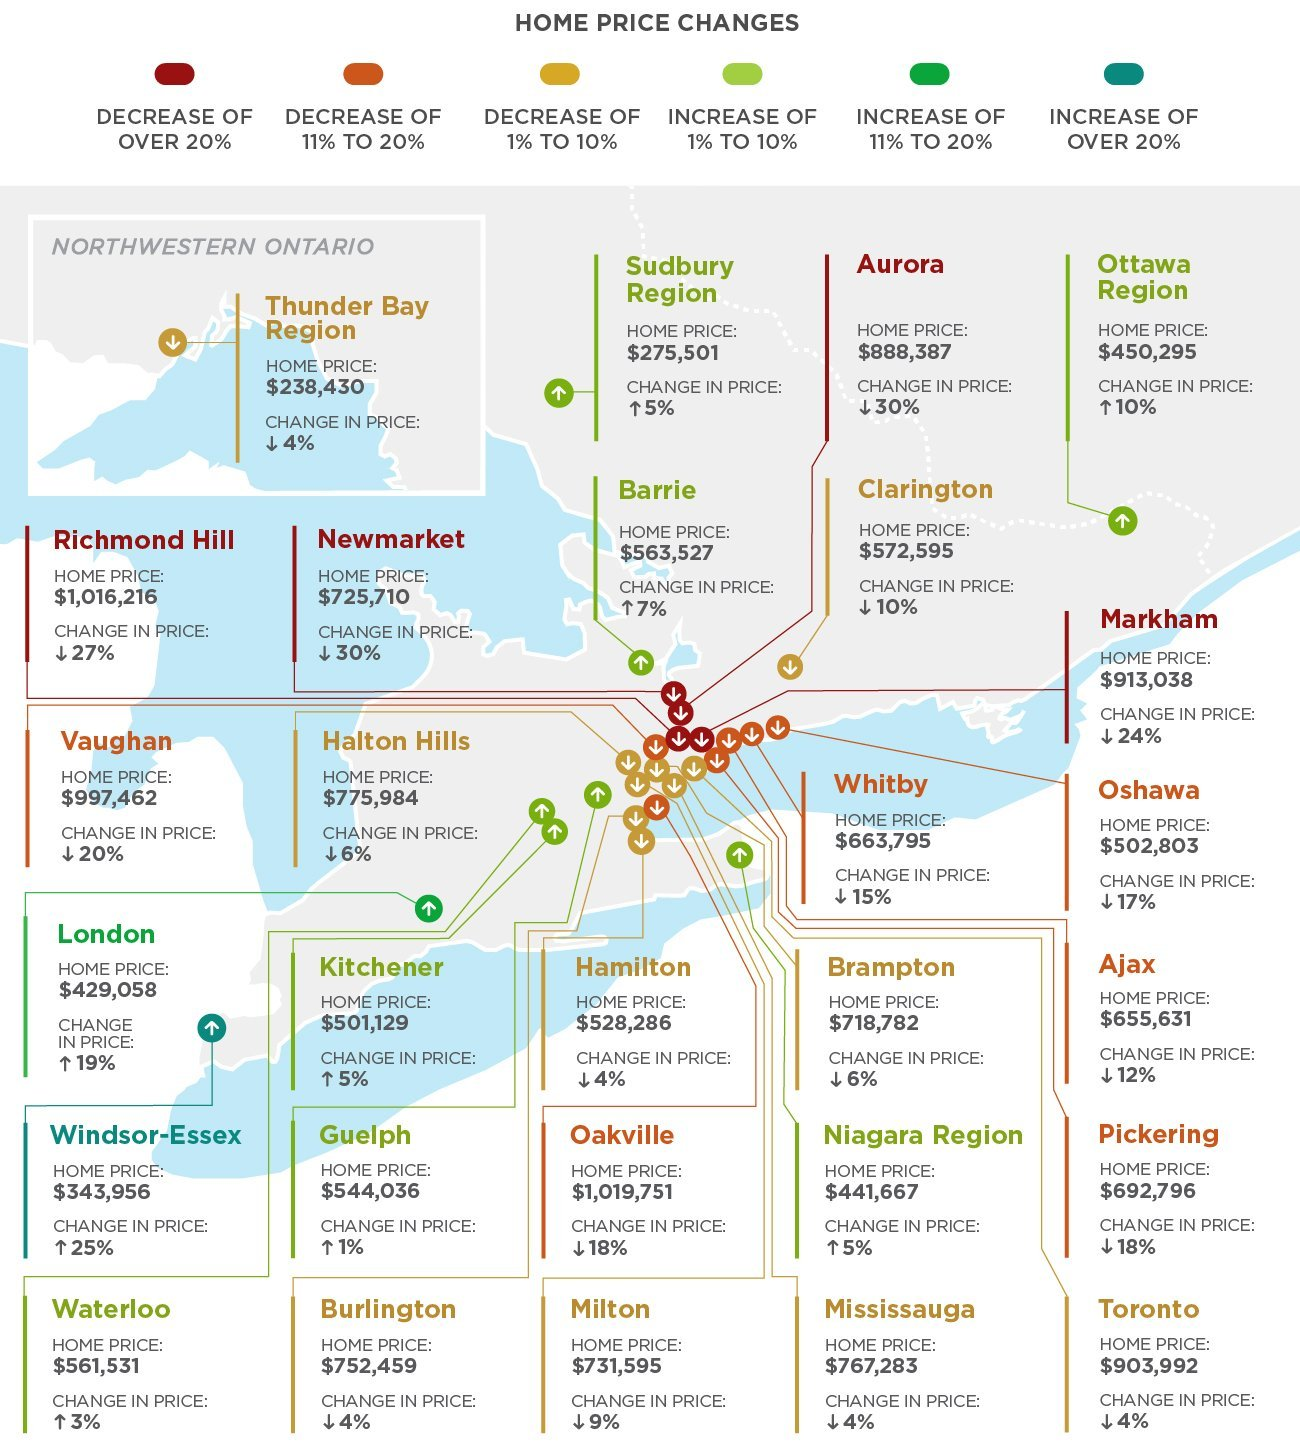 A map showing changes in house prices in various Ontario locations